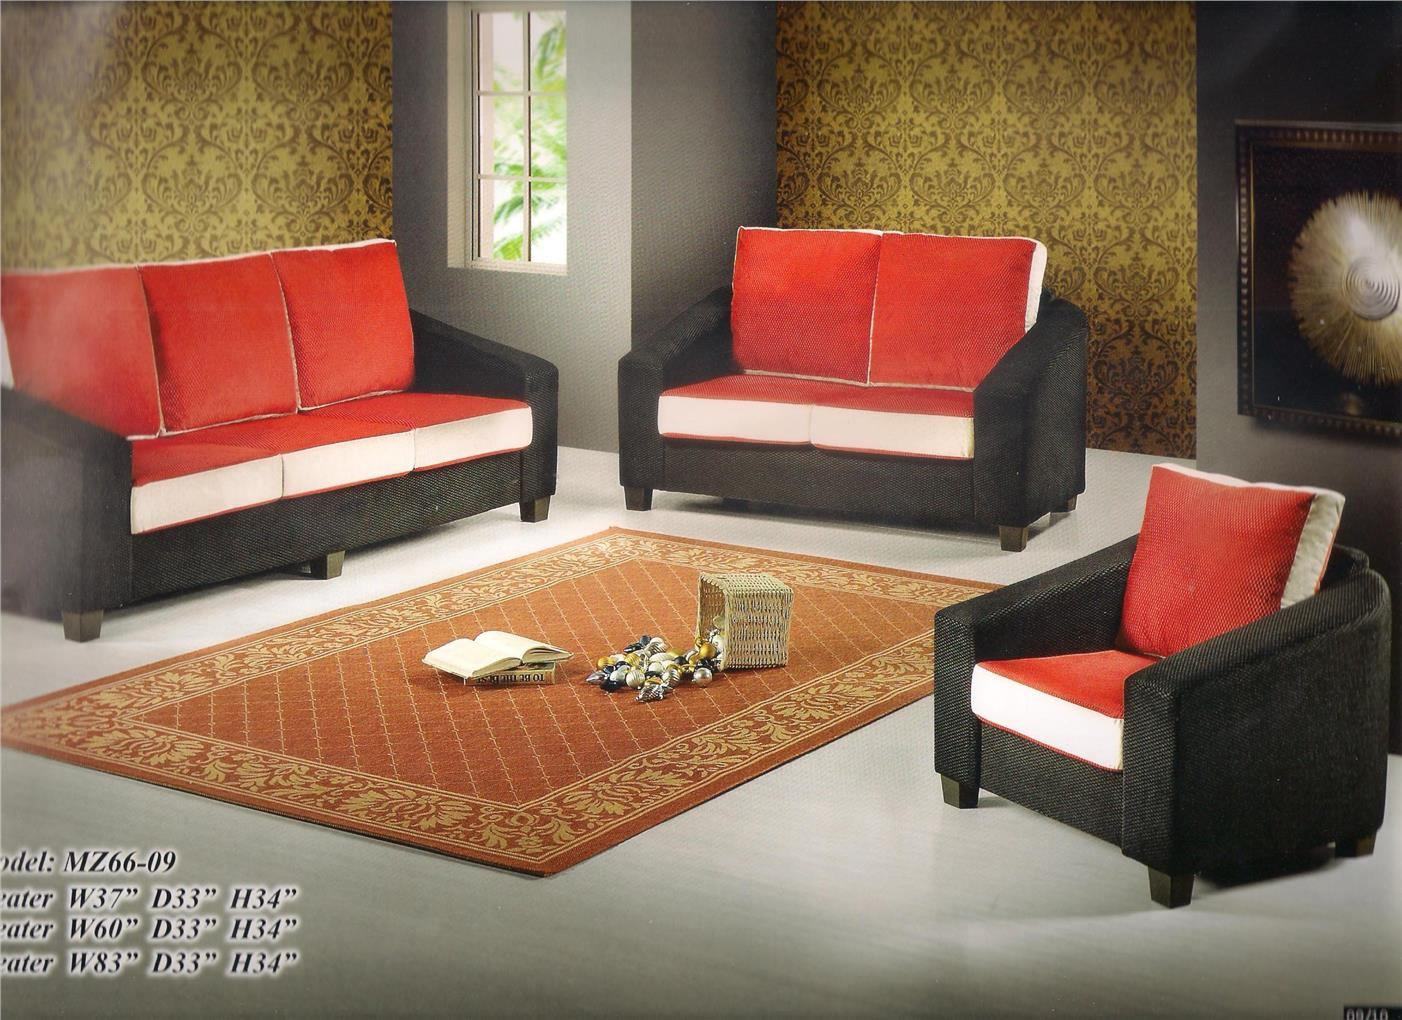 sofa set low cost cream color schemes nicehome price 3 432 431 seater sof end 10 18 2017 1 15 pm